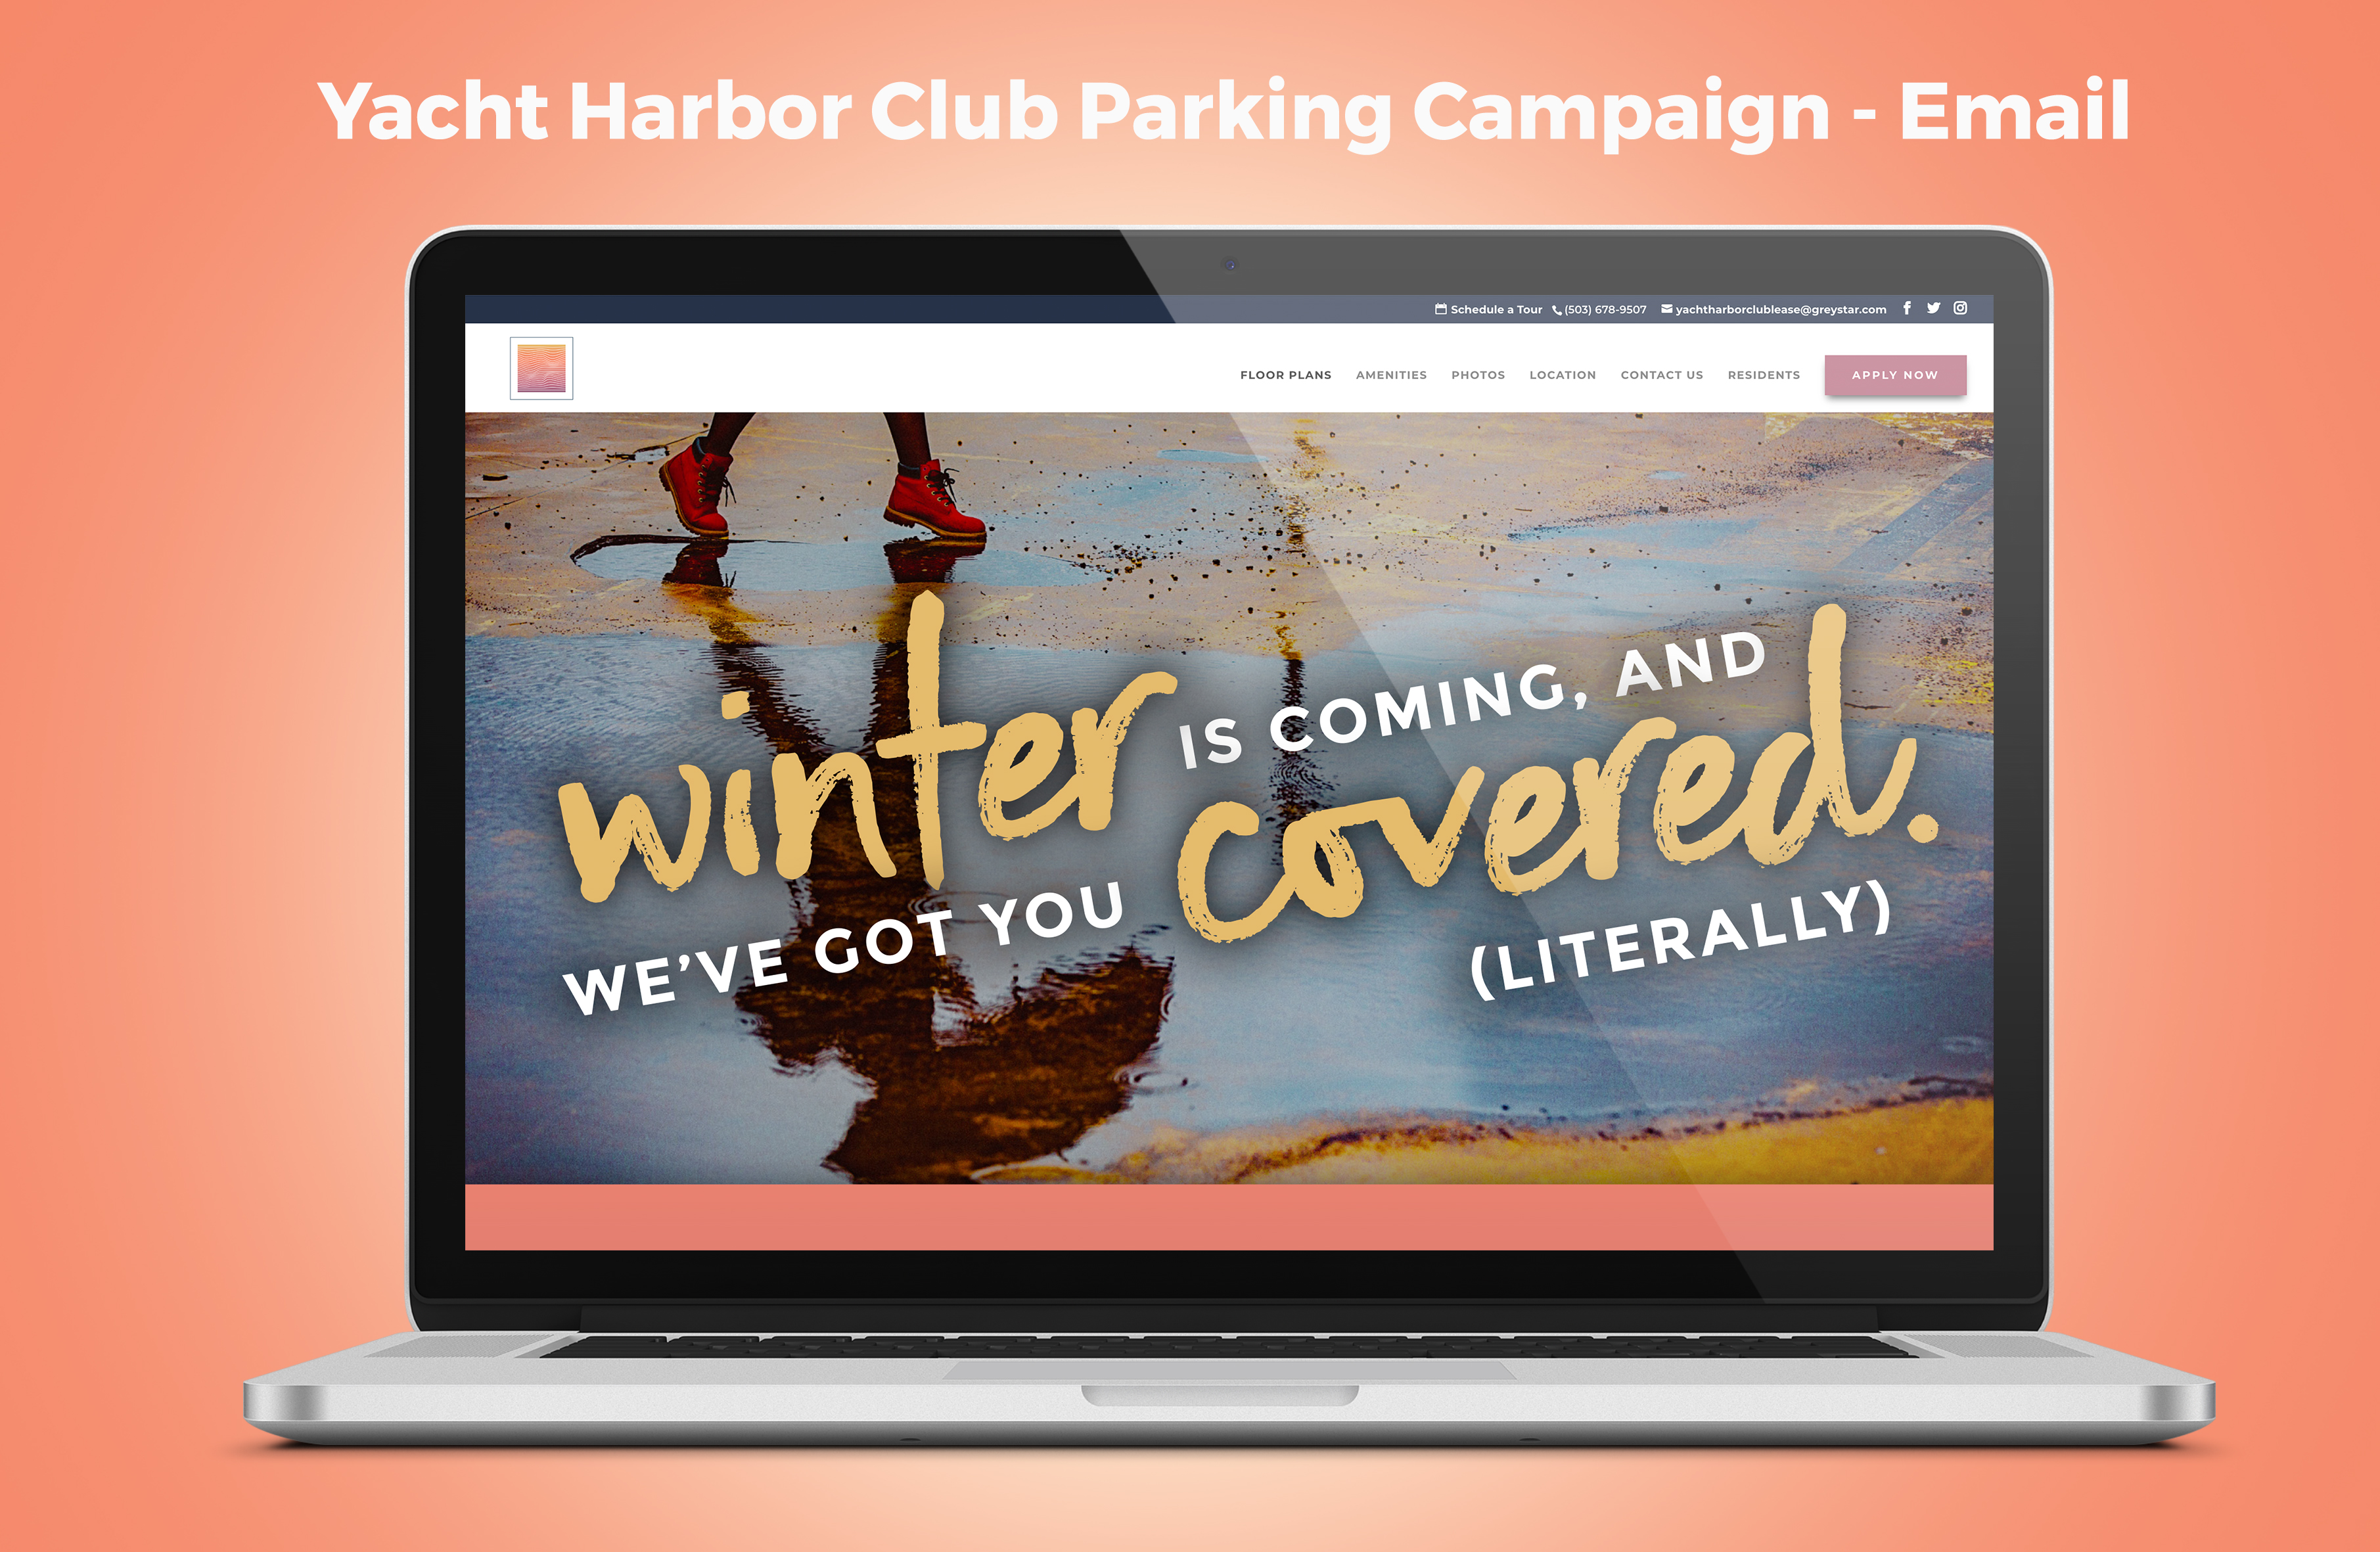 Yacht Harbor Club's Parking Campaign Email